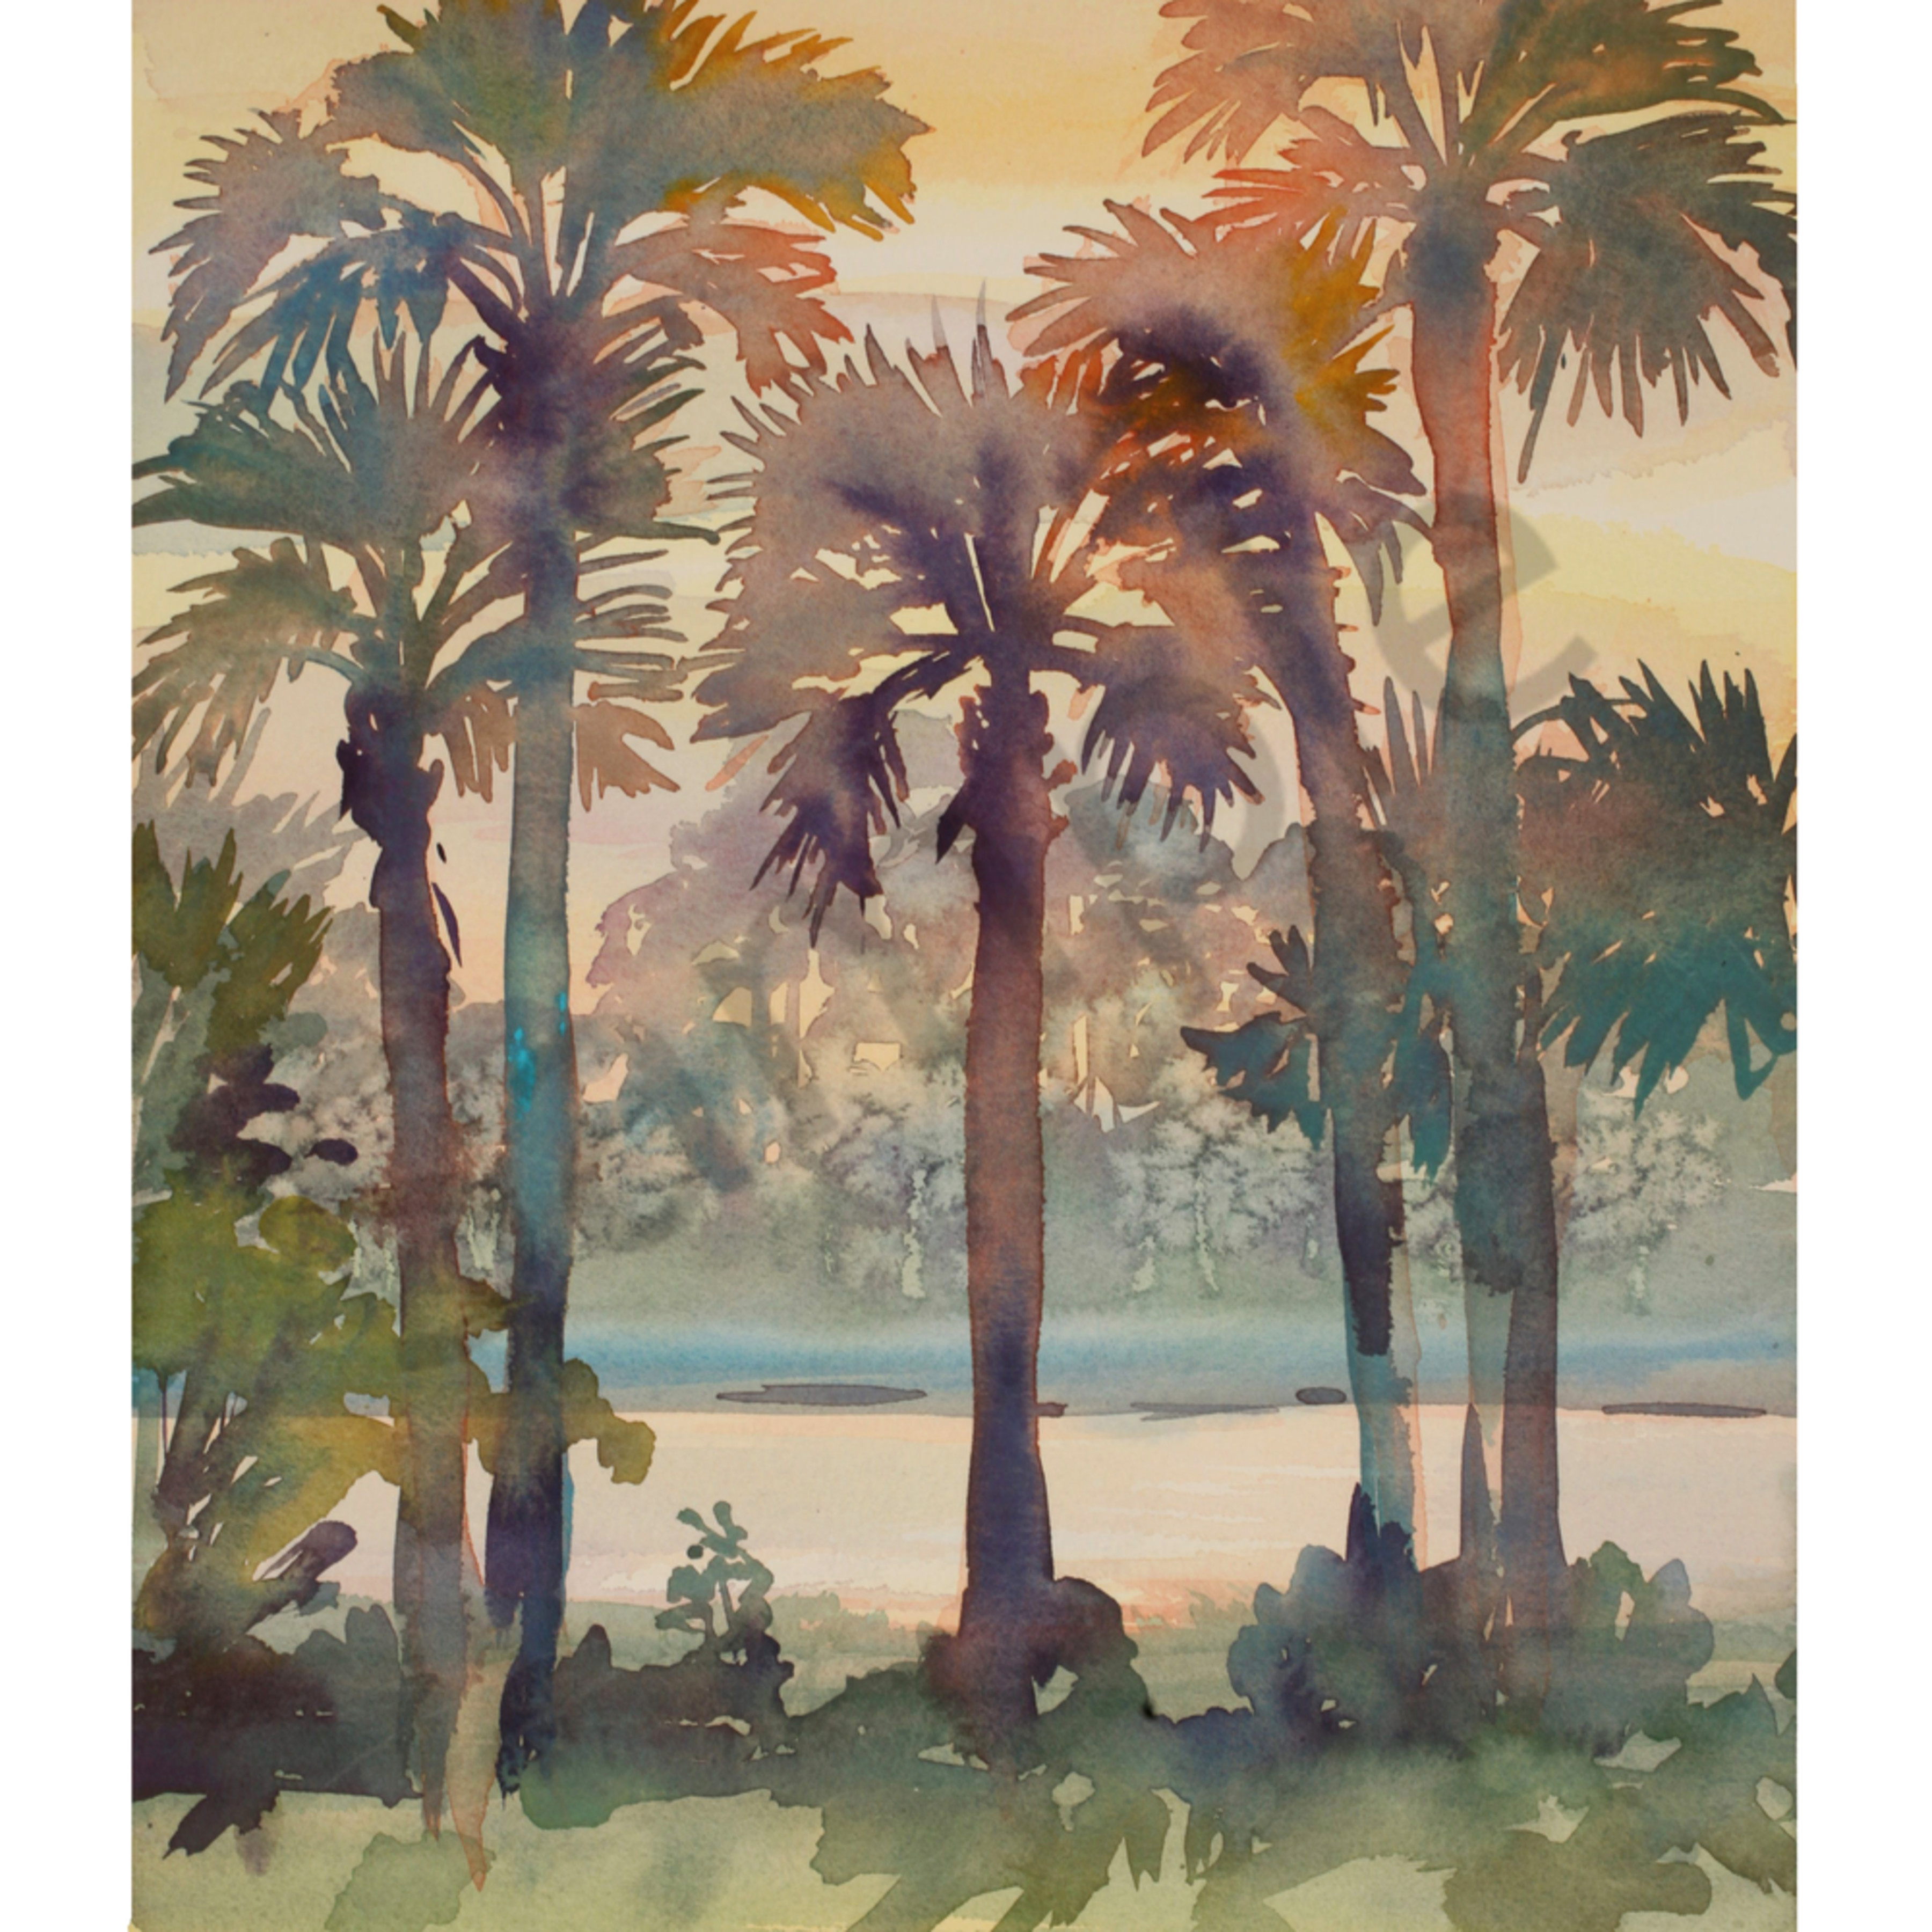 Intracoastal palms 3 12 x 16 watercolor landscapes hckftv